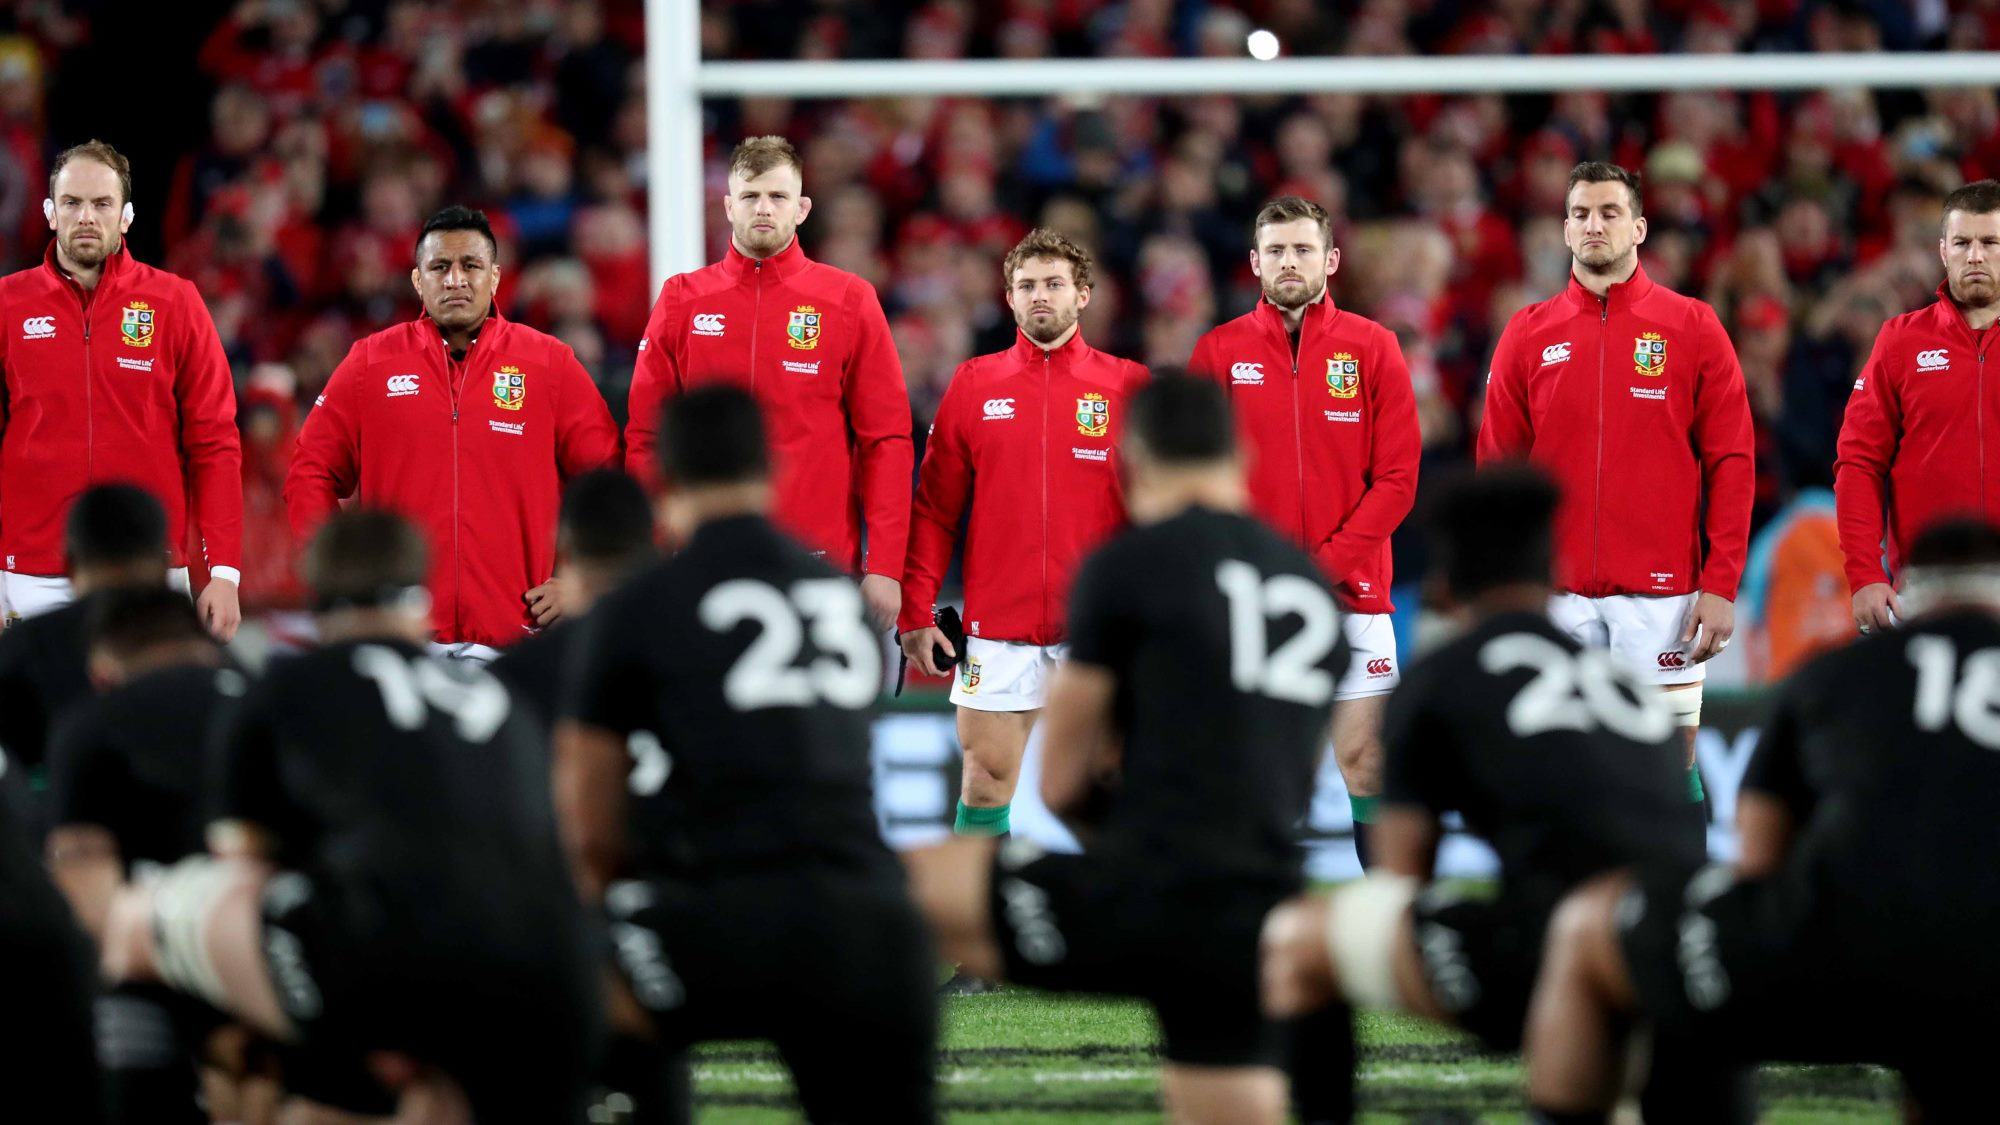 All for one: Lions supporters learn the haka